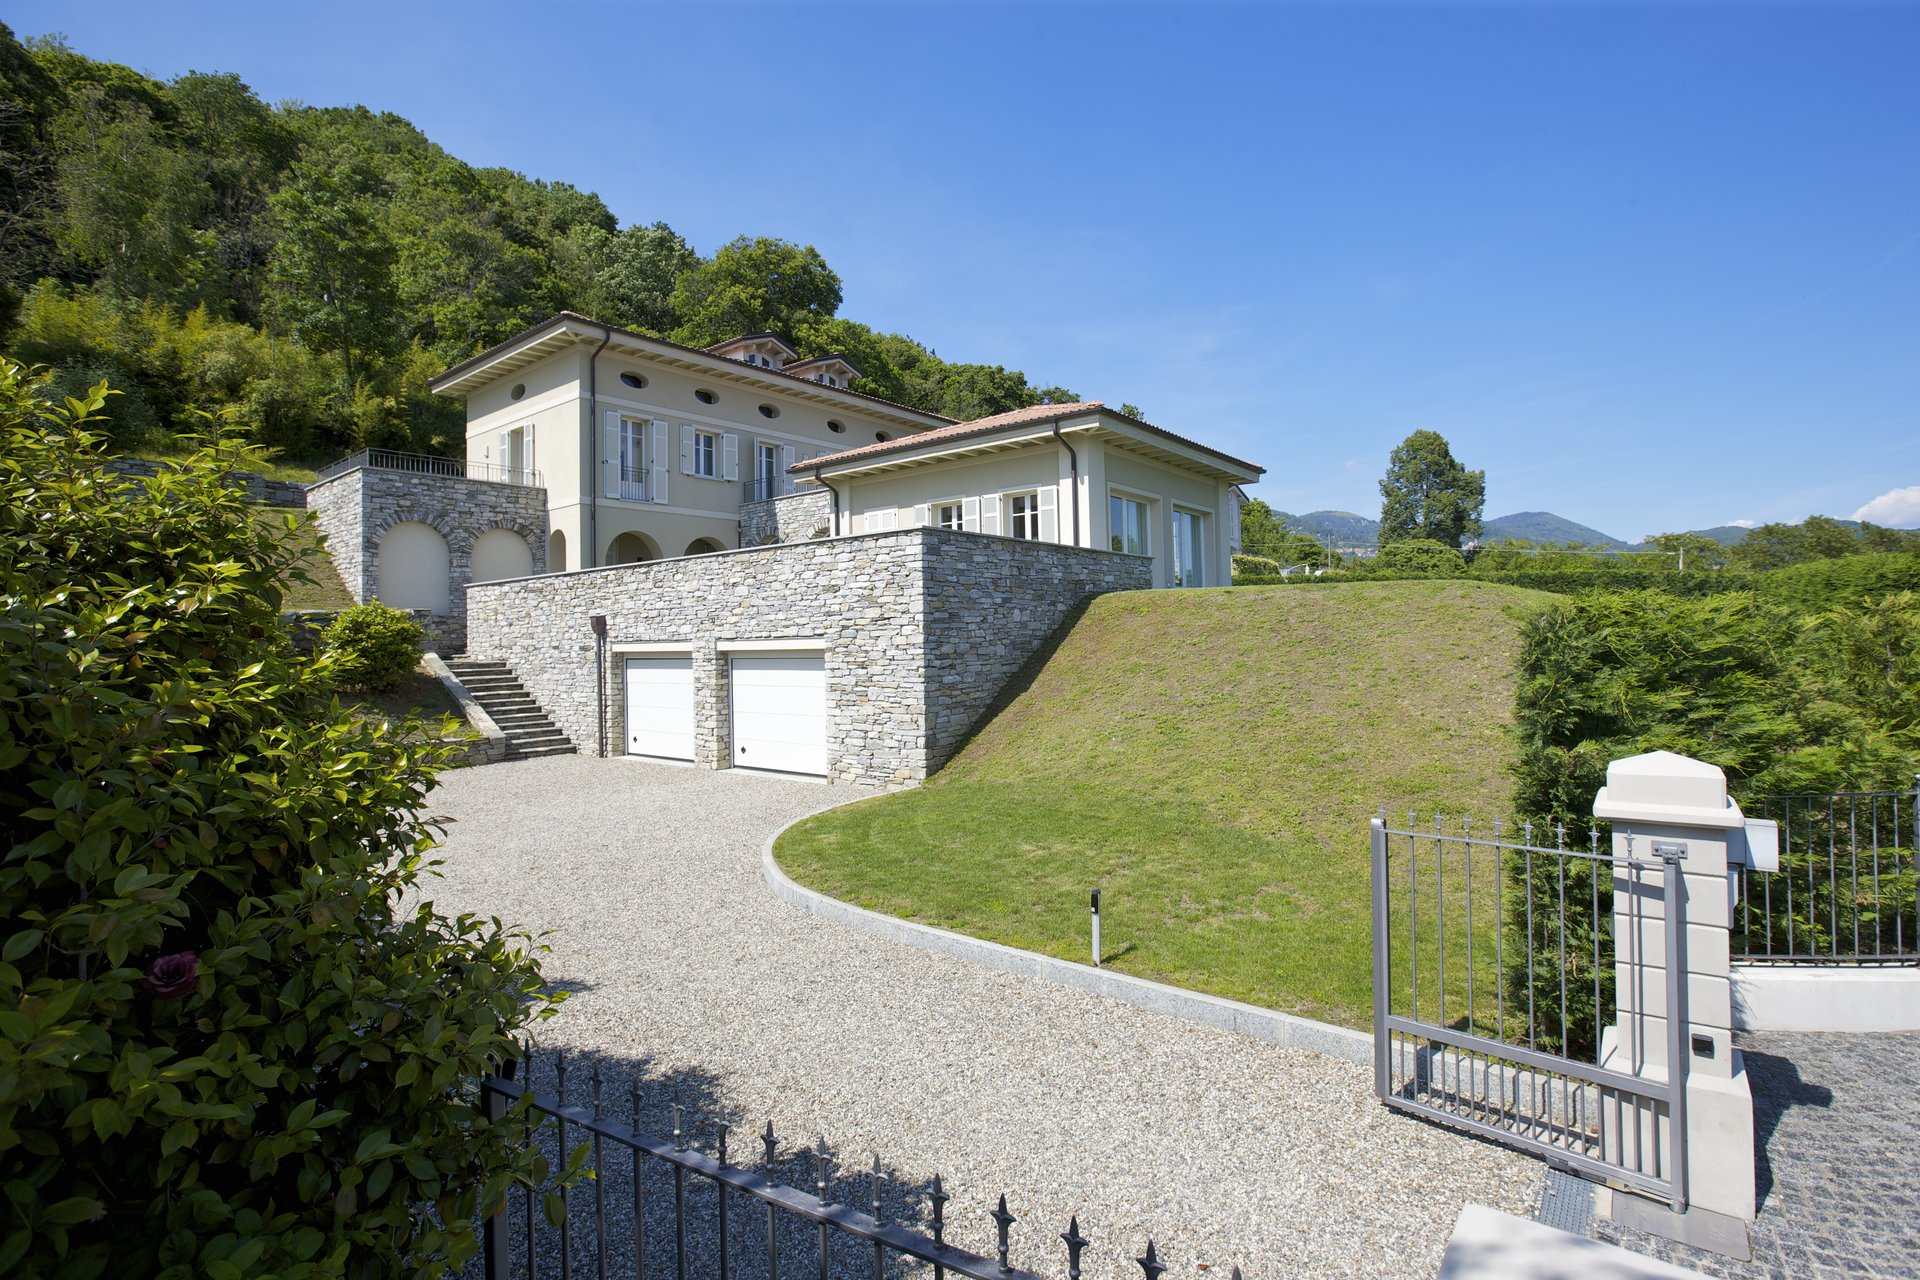 Exclusive villa for sale in Verbania, on Lake Maggiore - entry gate